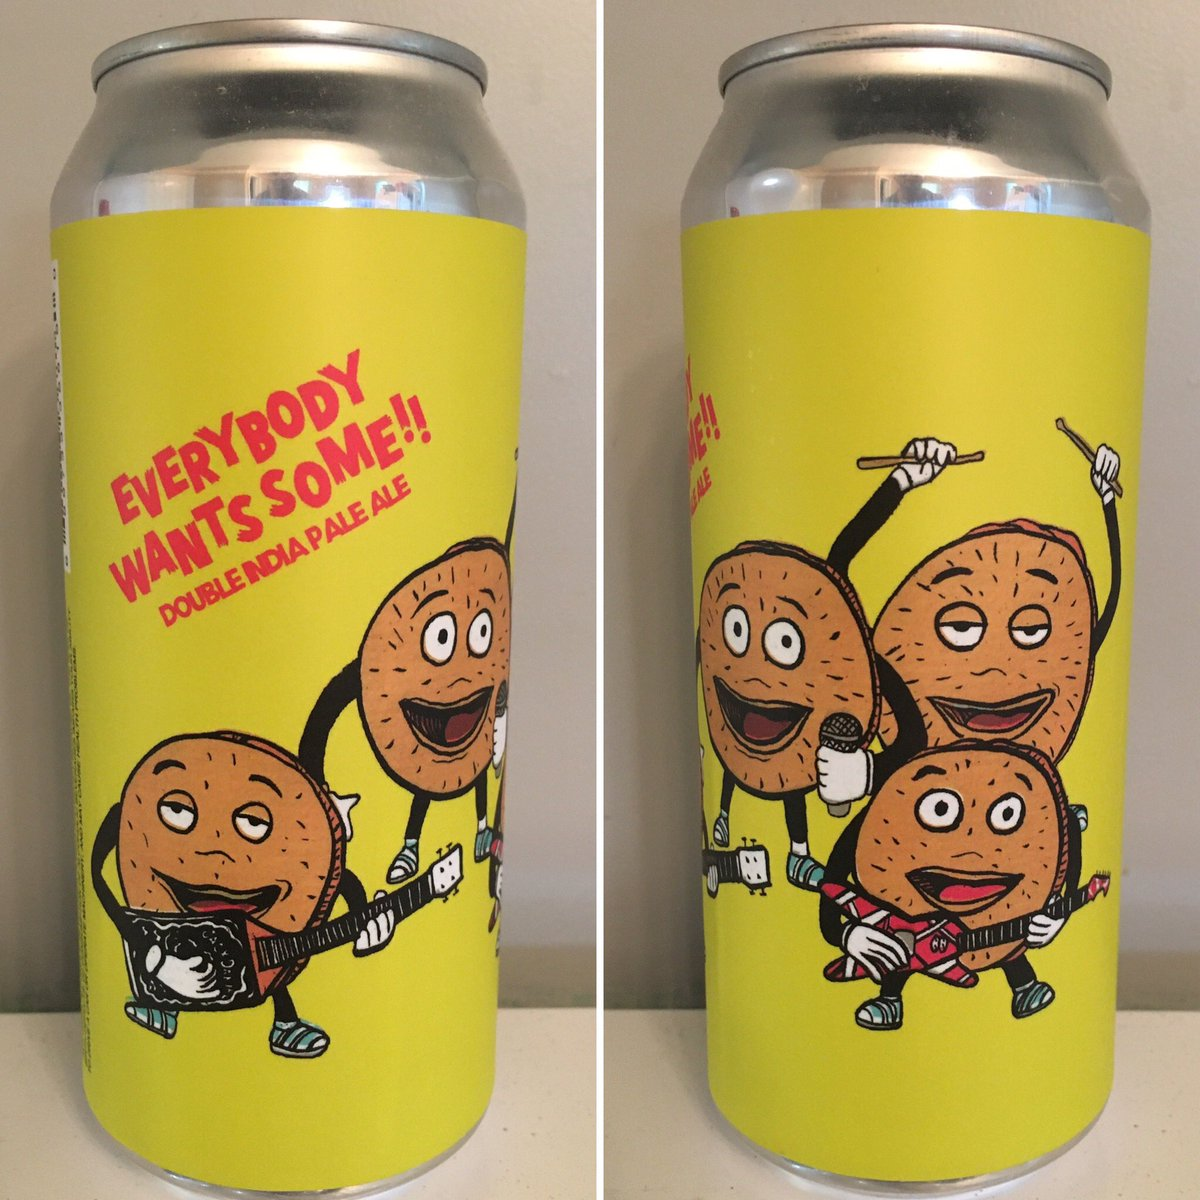 Hoof Hearted Brewing Everybody Wants Some!! Double IPA @VanHalen  #DavidLeeRoth #BetterOffDead #JohnCusack #canmuseum